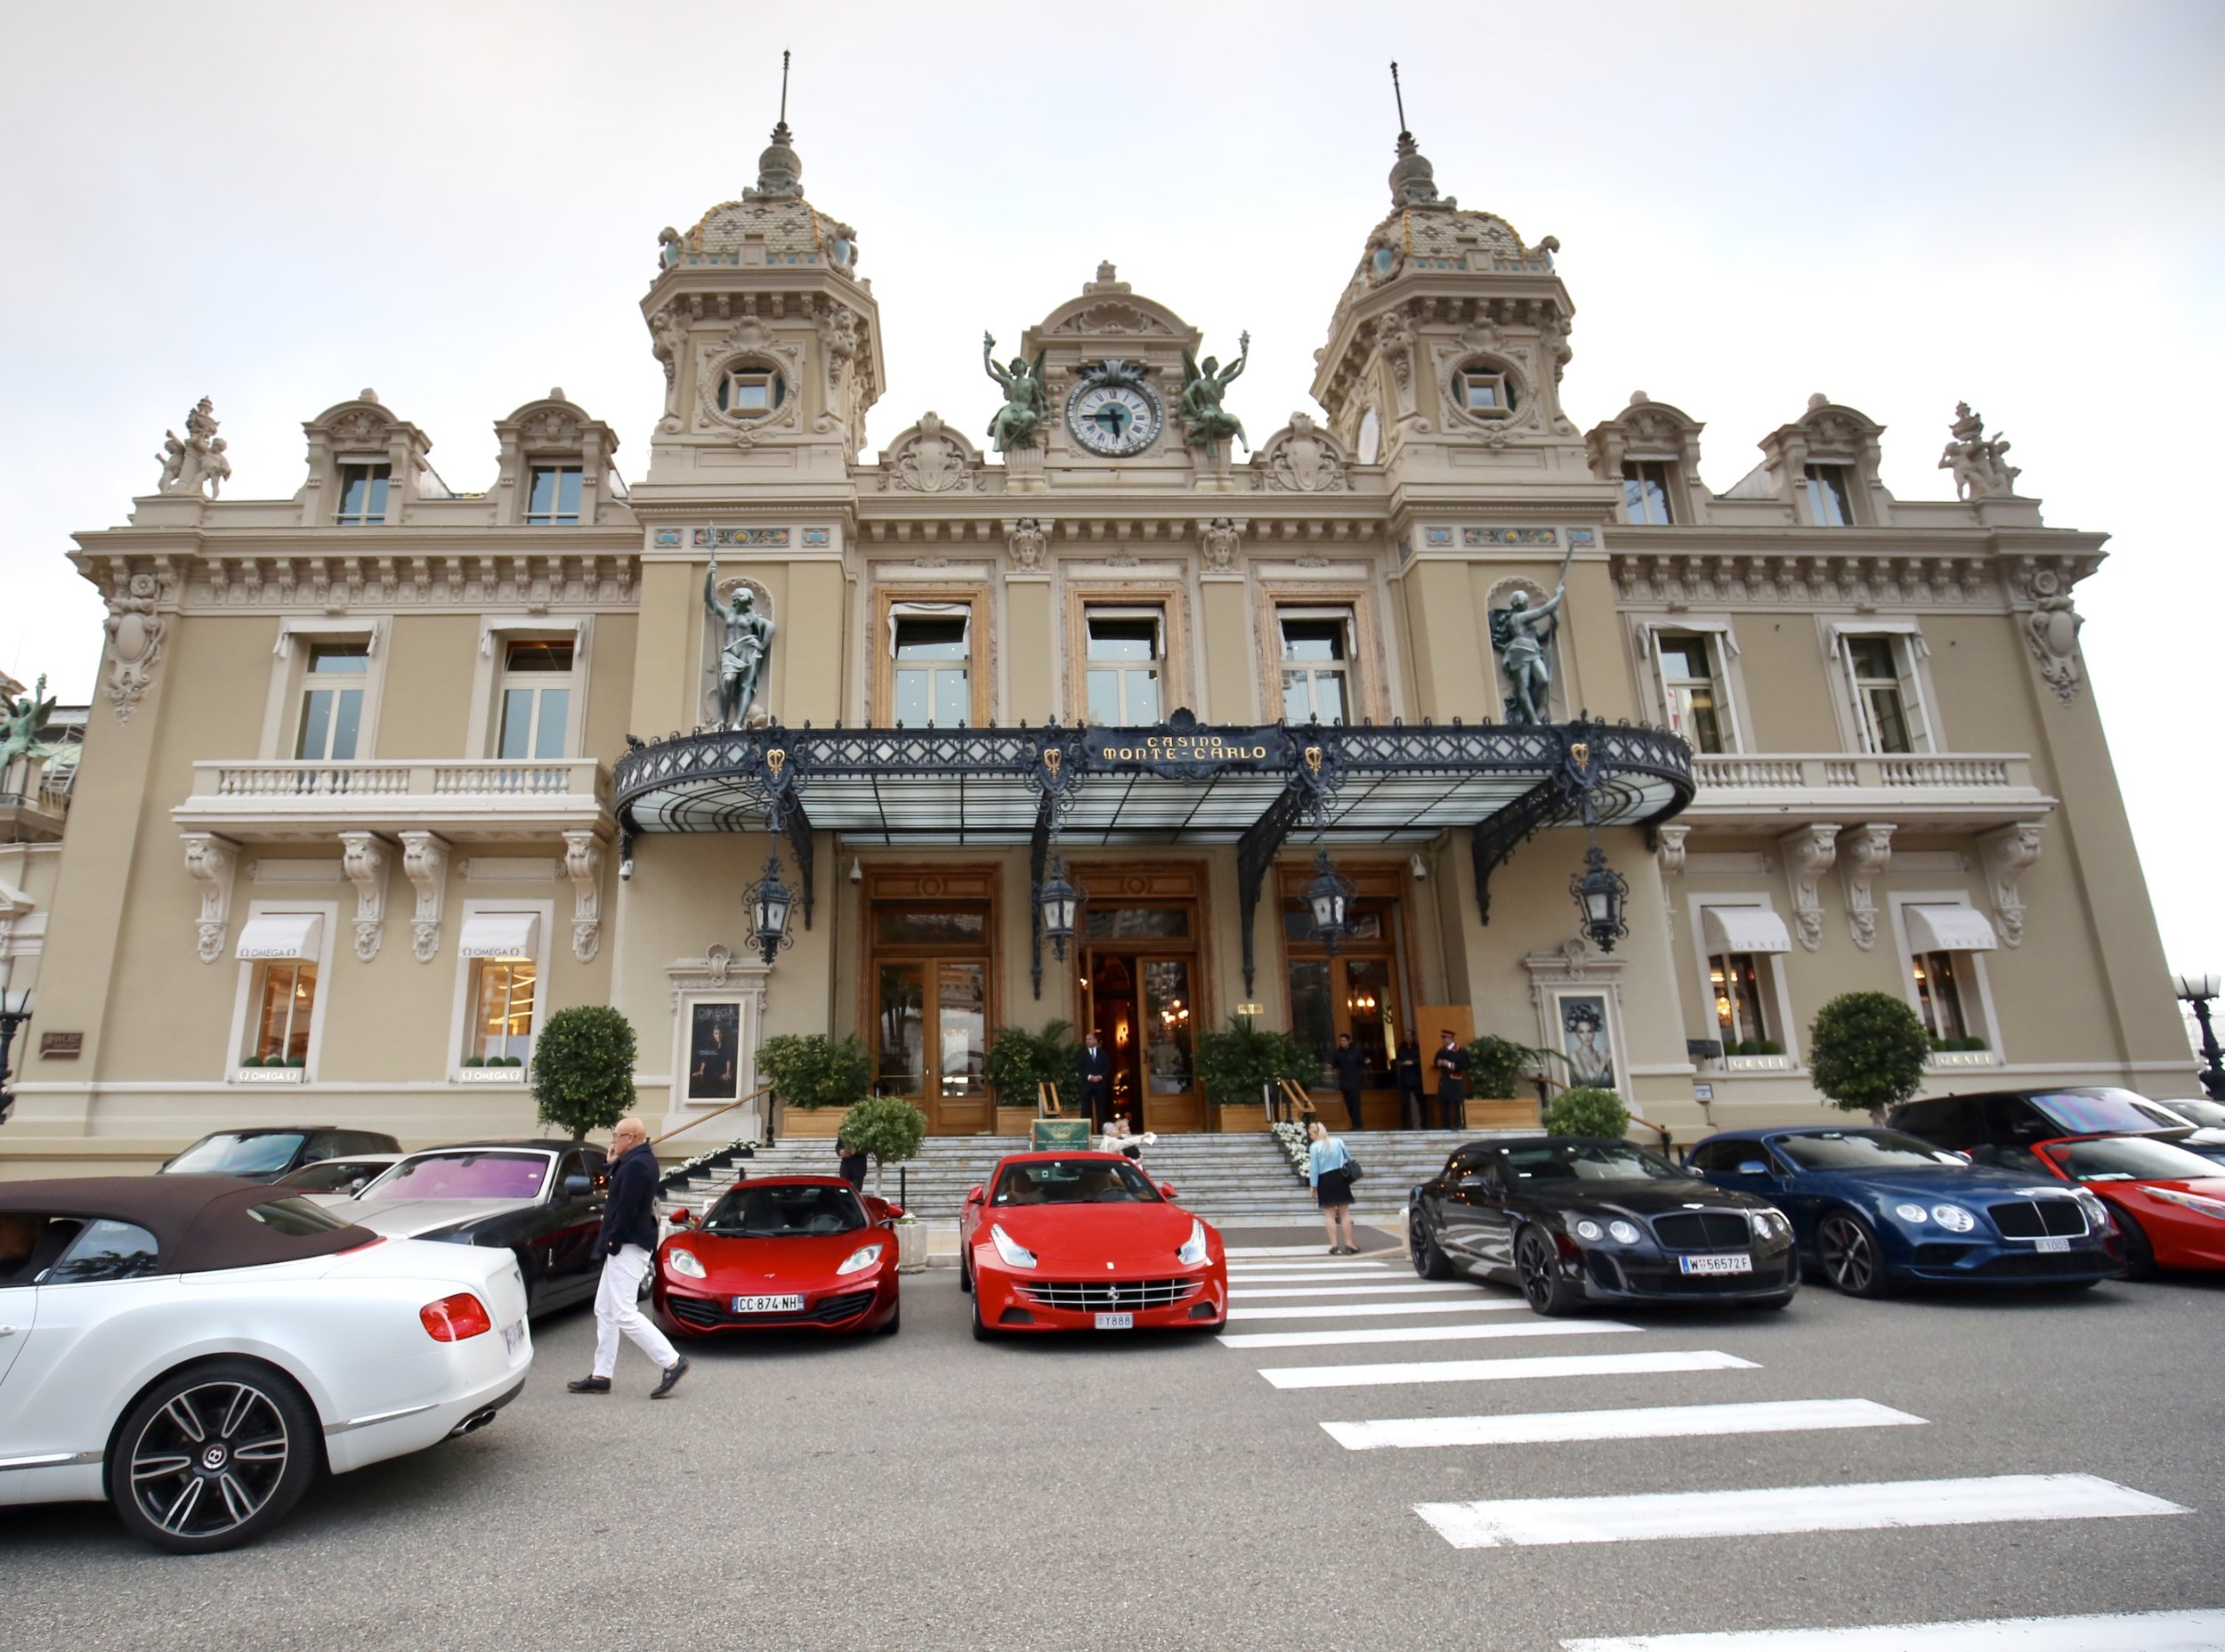 The Monte Carlo Casino façade, with luxury cars parked in front.